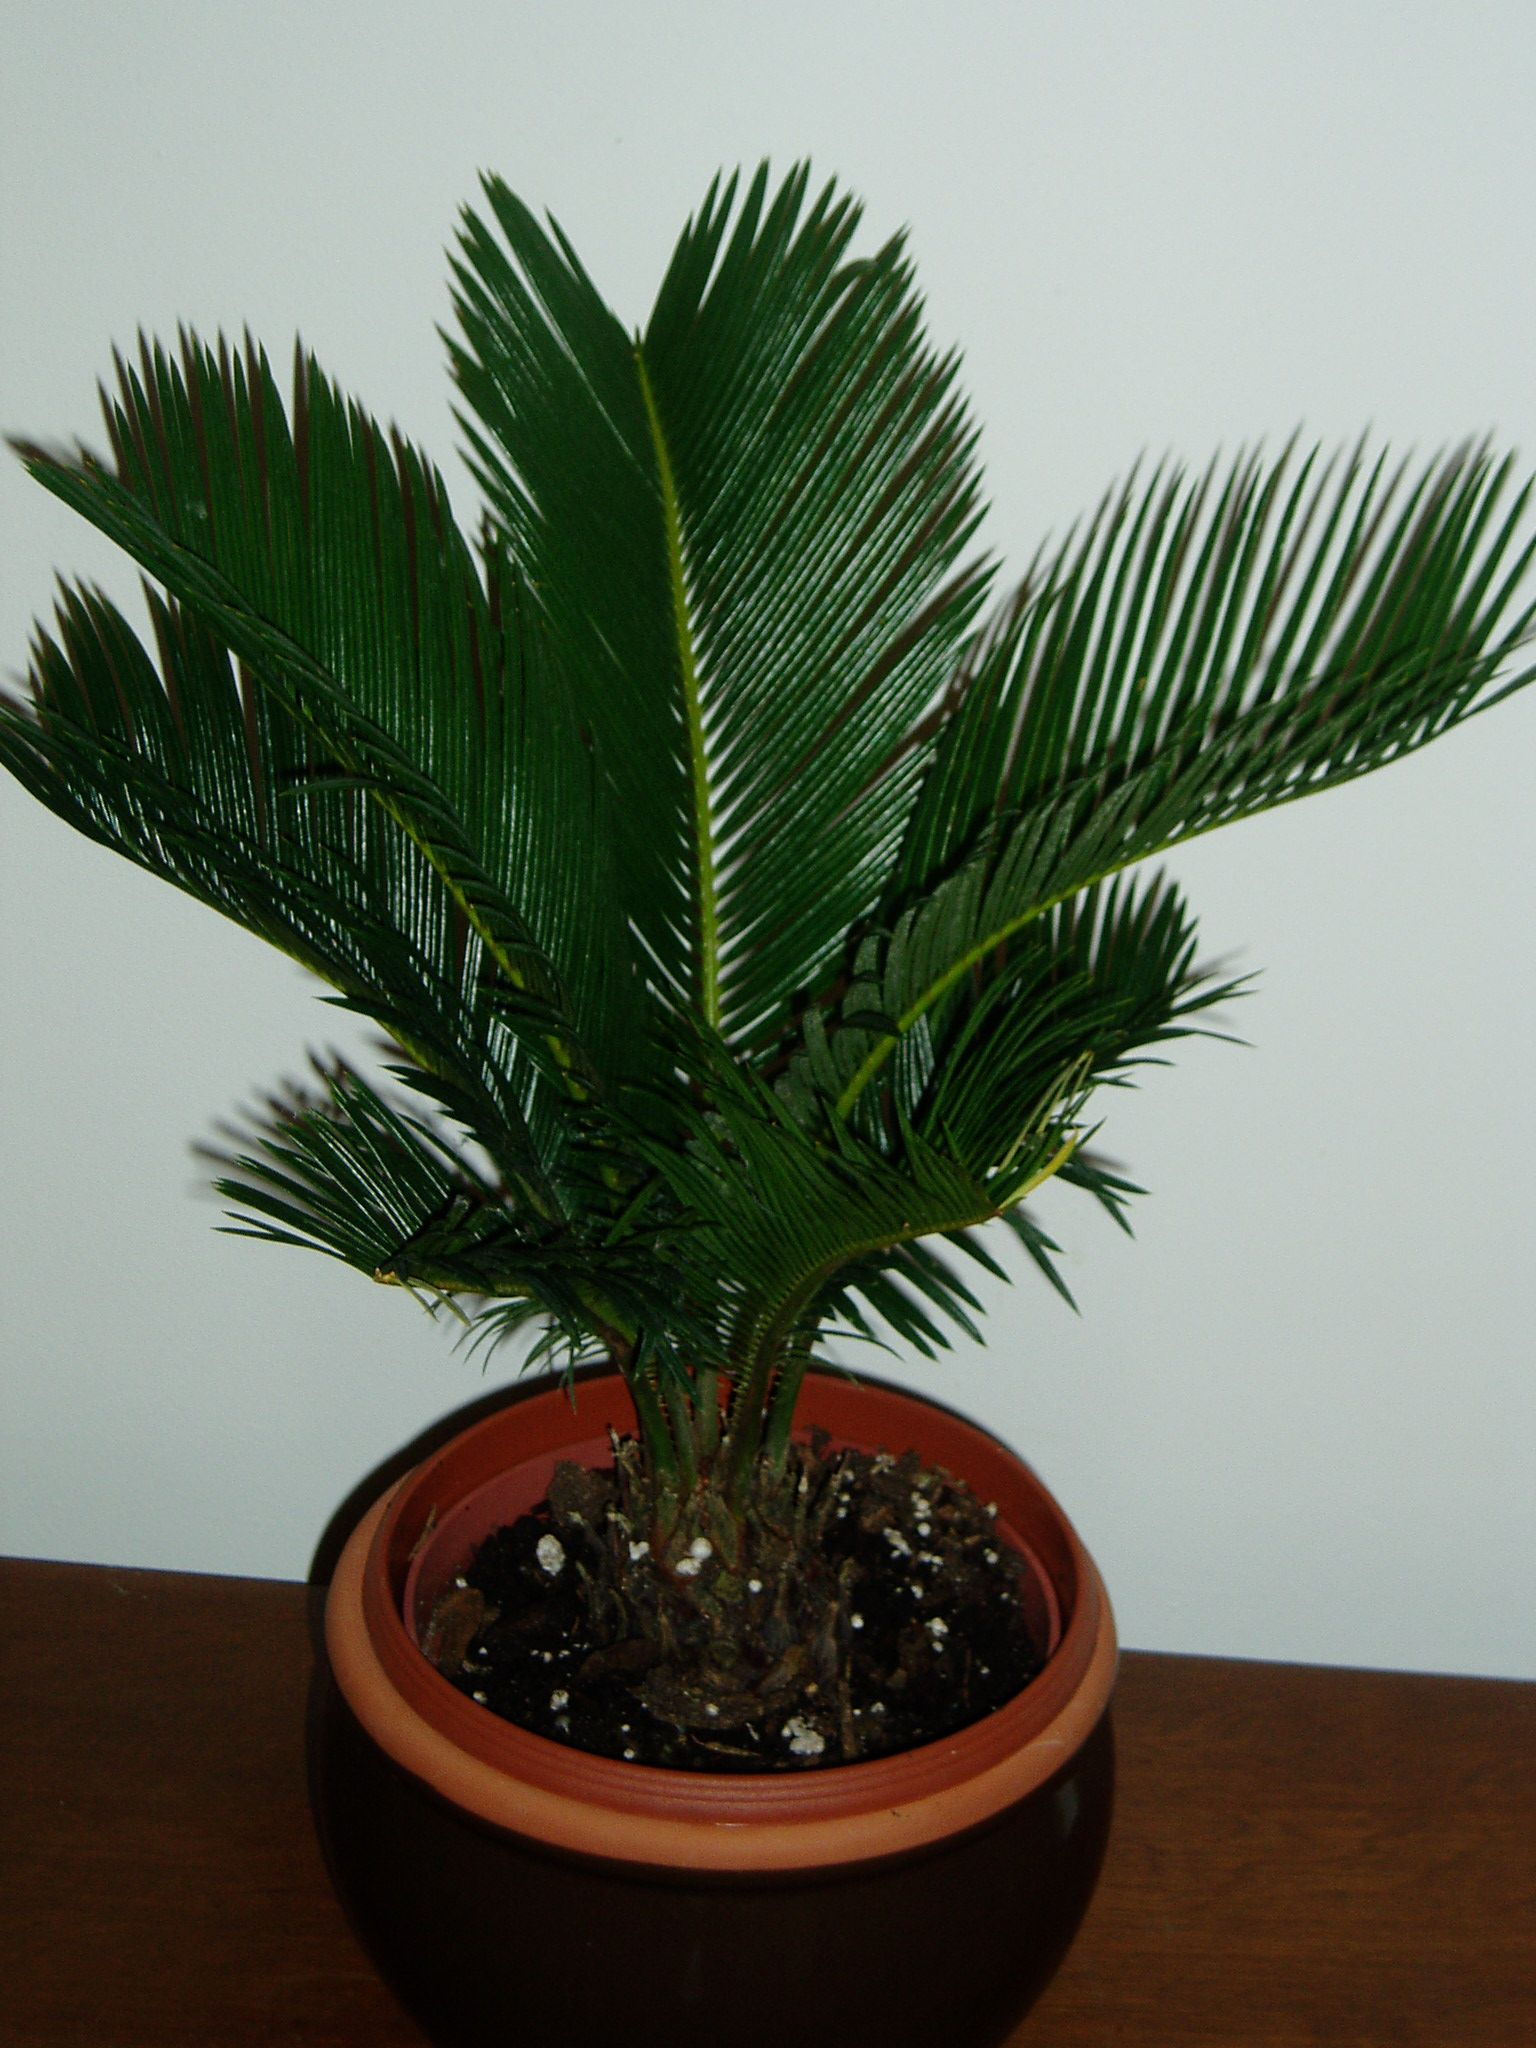 Indoor Plant Types Palm Type House Plants Palm Was Native To The Tropics